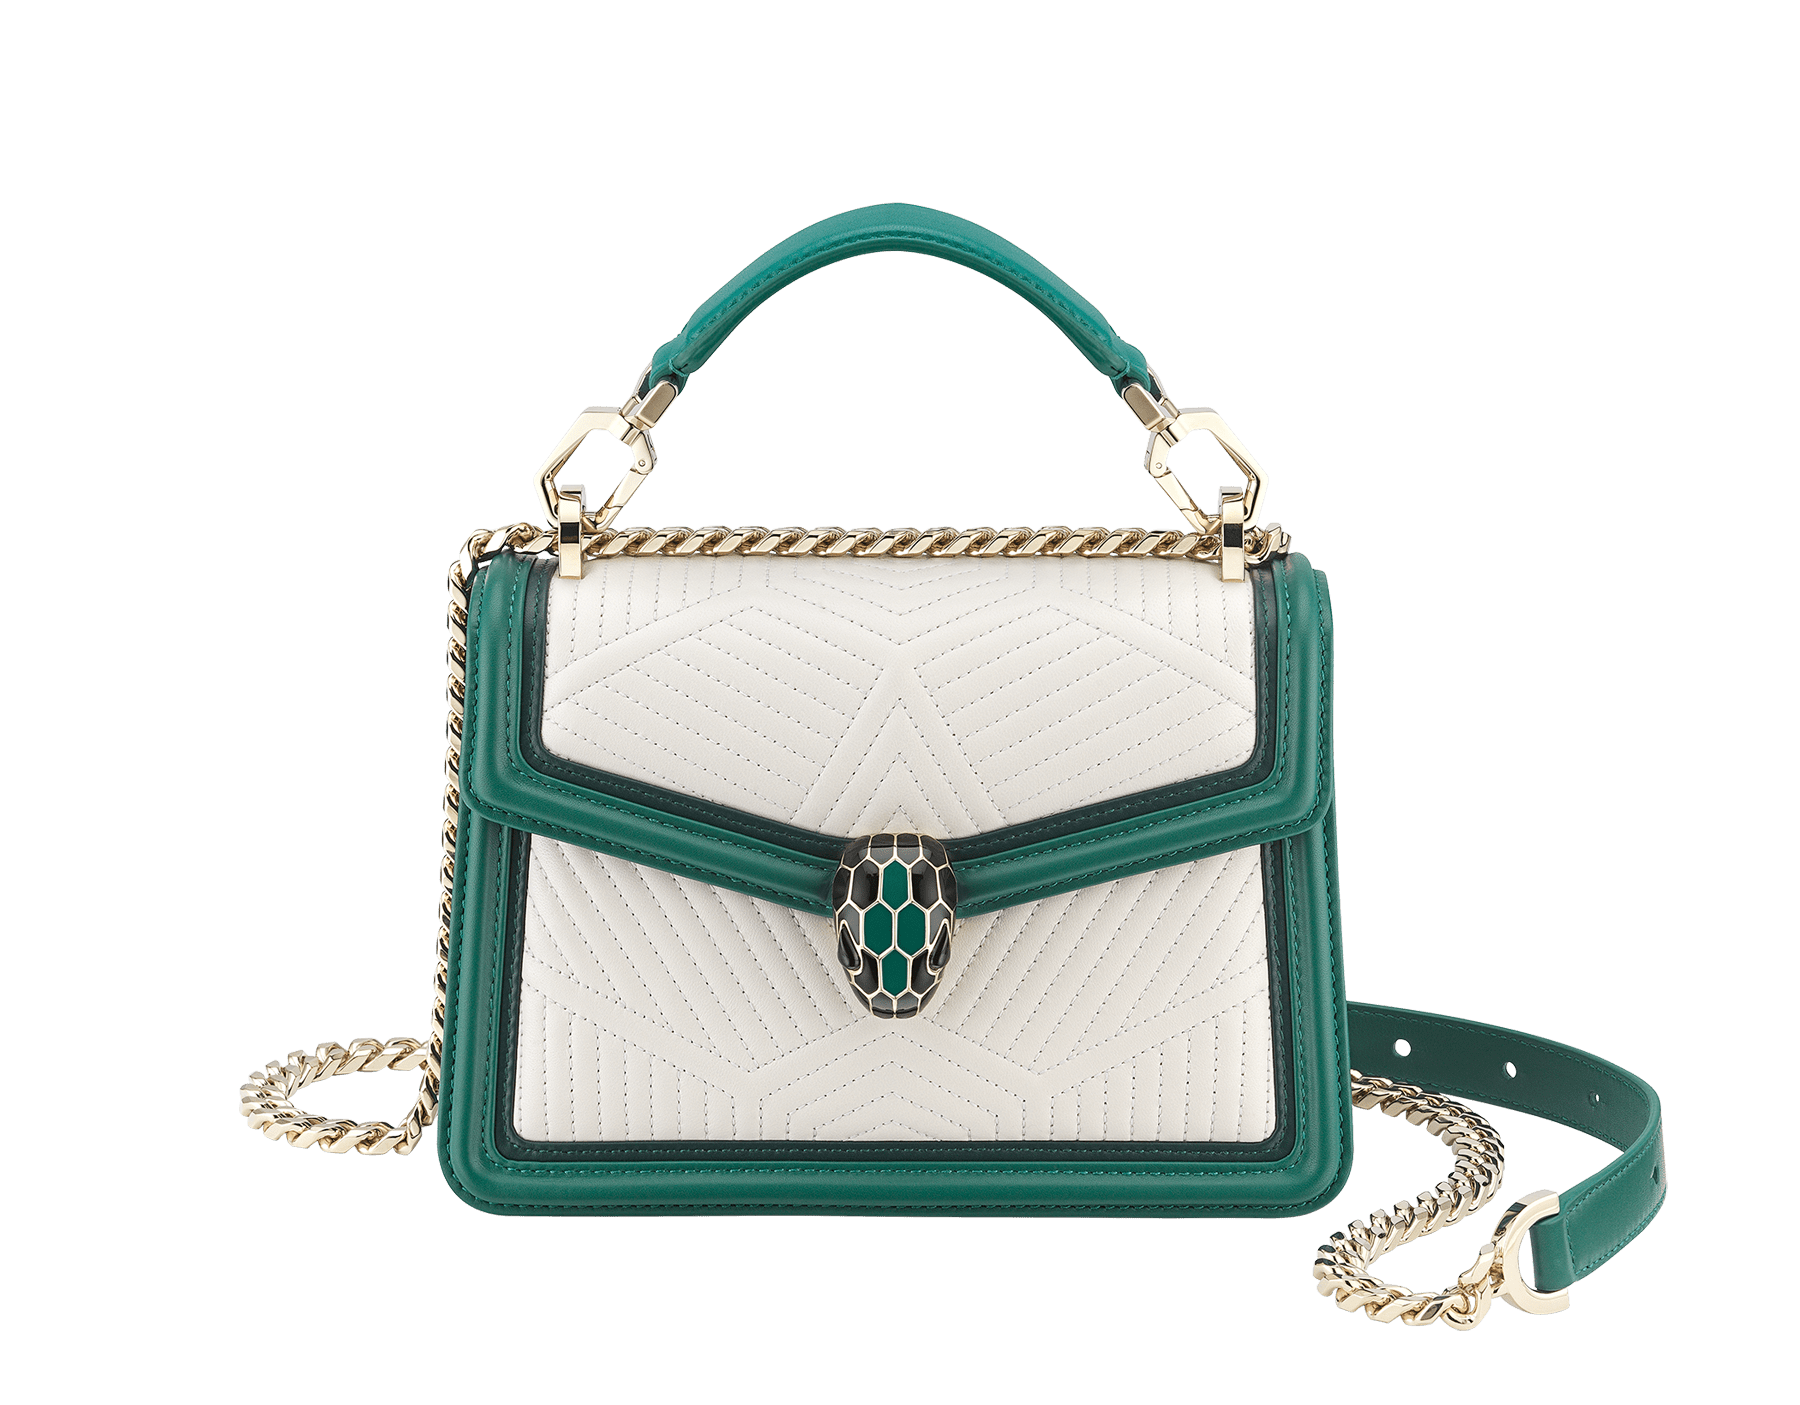 """Serpenti Diamond Blast"" top handle bag in white agate quilted nappa leather and emerald green smooth calf leather frames. Iconic snakehead closure in light gold-plated brass enriched with matte black and shiny emerald green enamel and black onyx eyes. 289944 image 1"